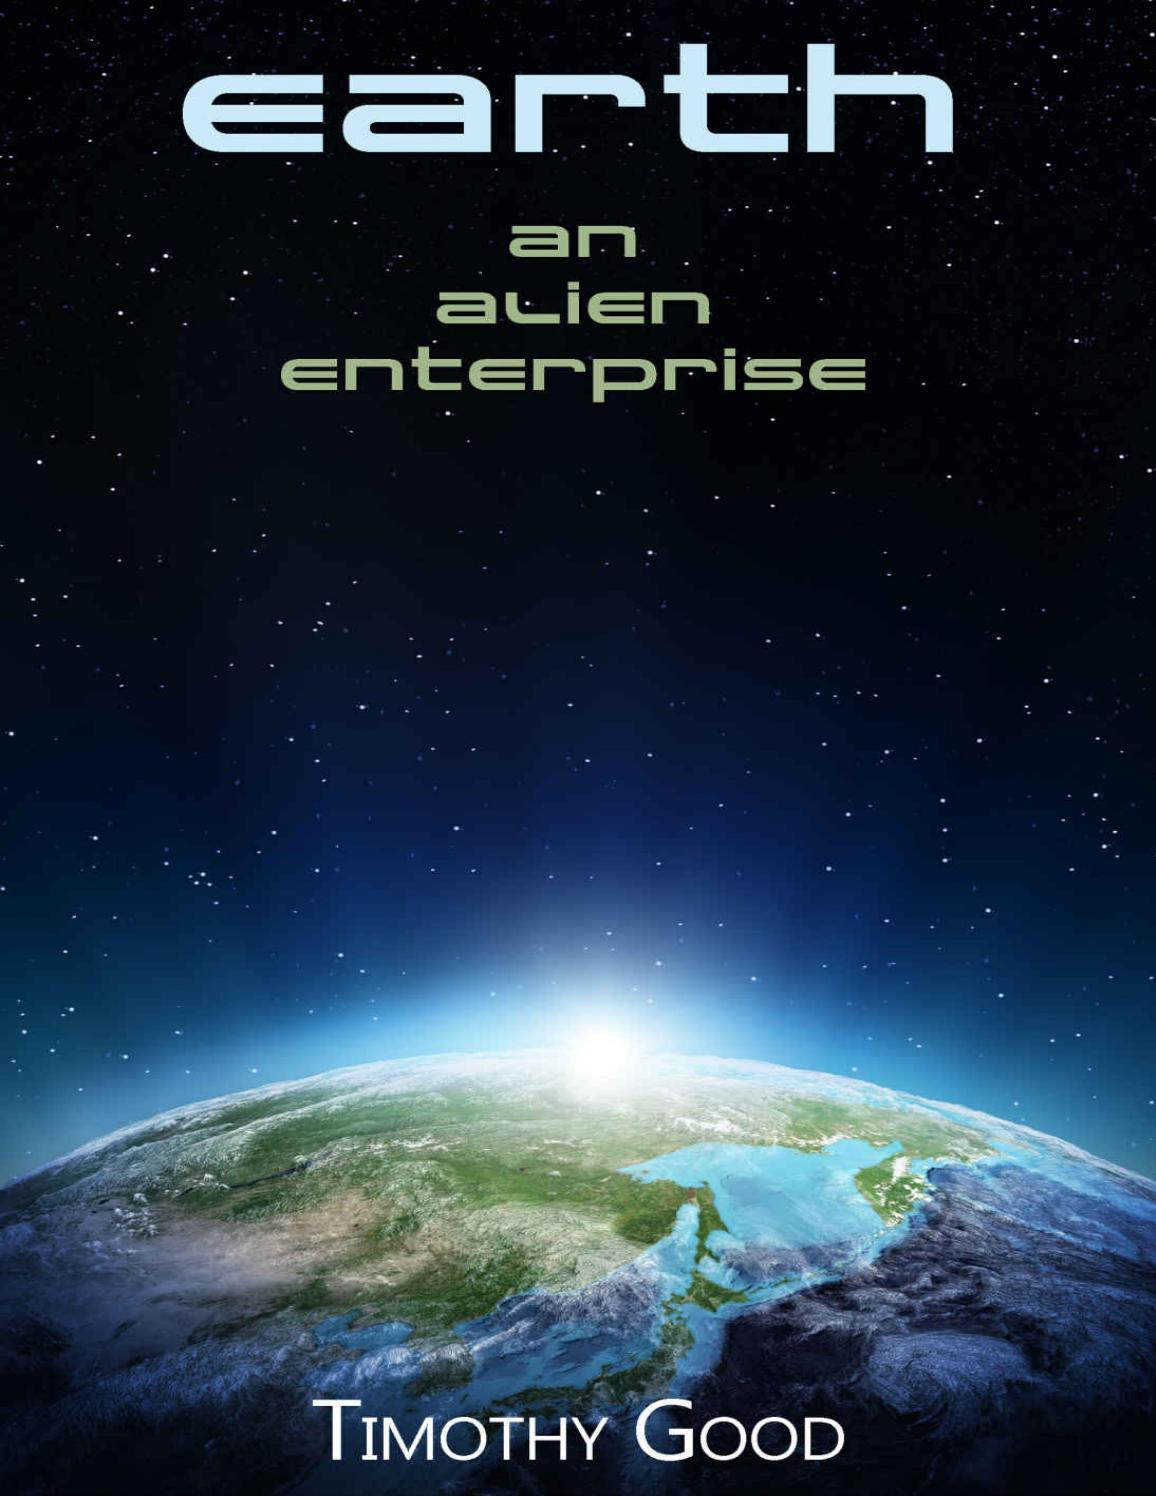 Timothy good earth an alien enterprise by mach4c issuu